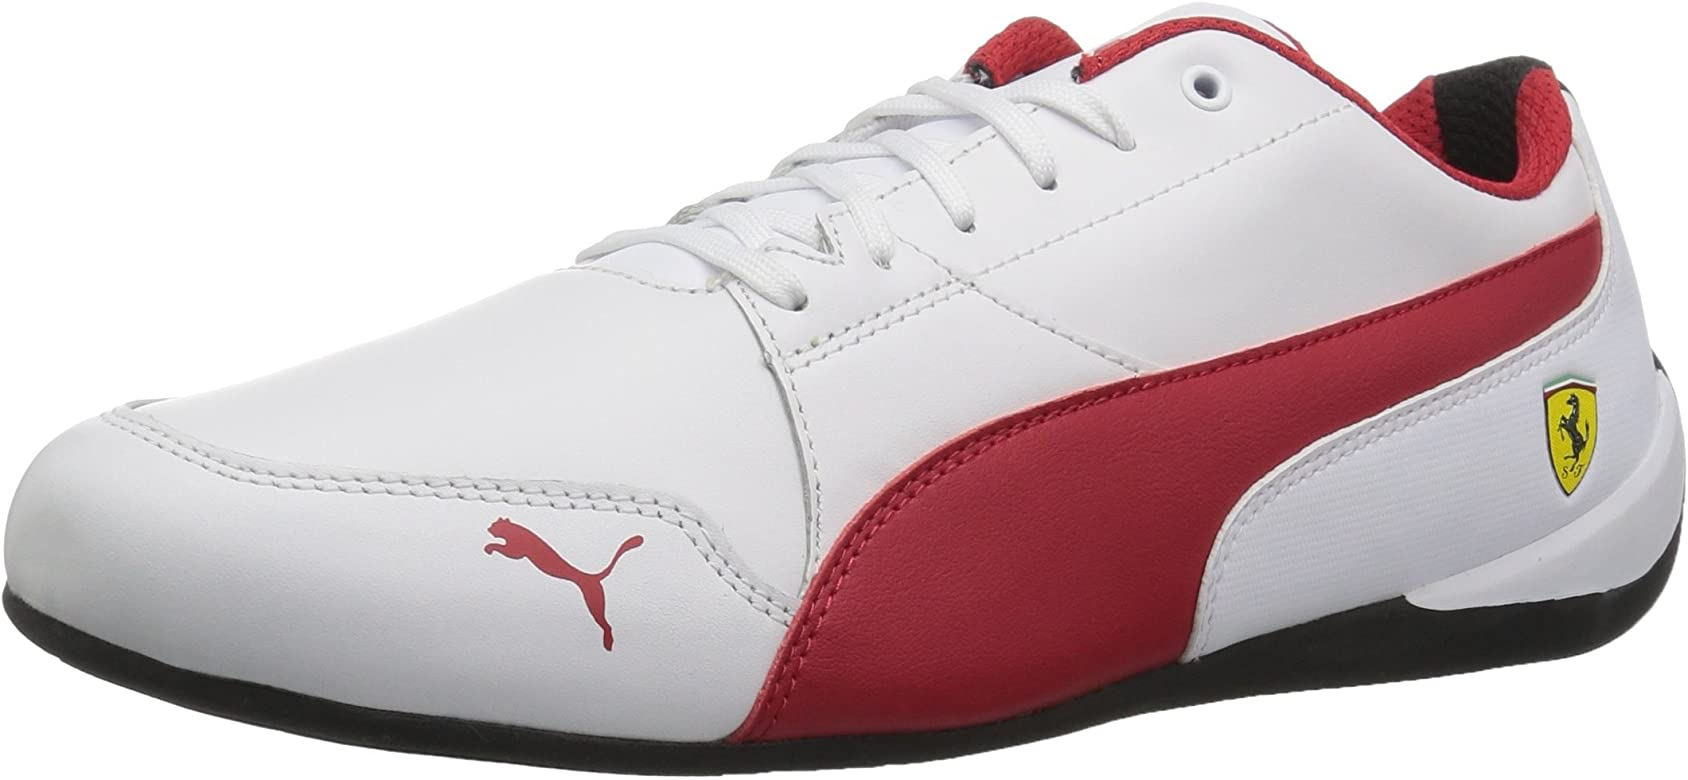 2b9036908af Men's Ferrari Drift Cat 7 Sneaker